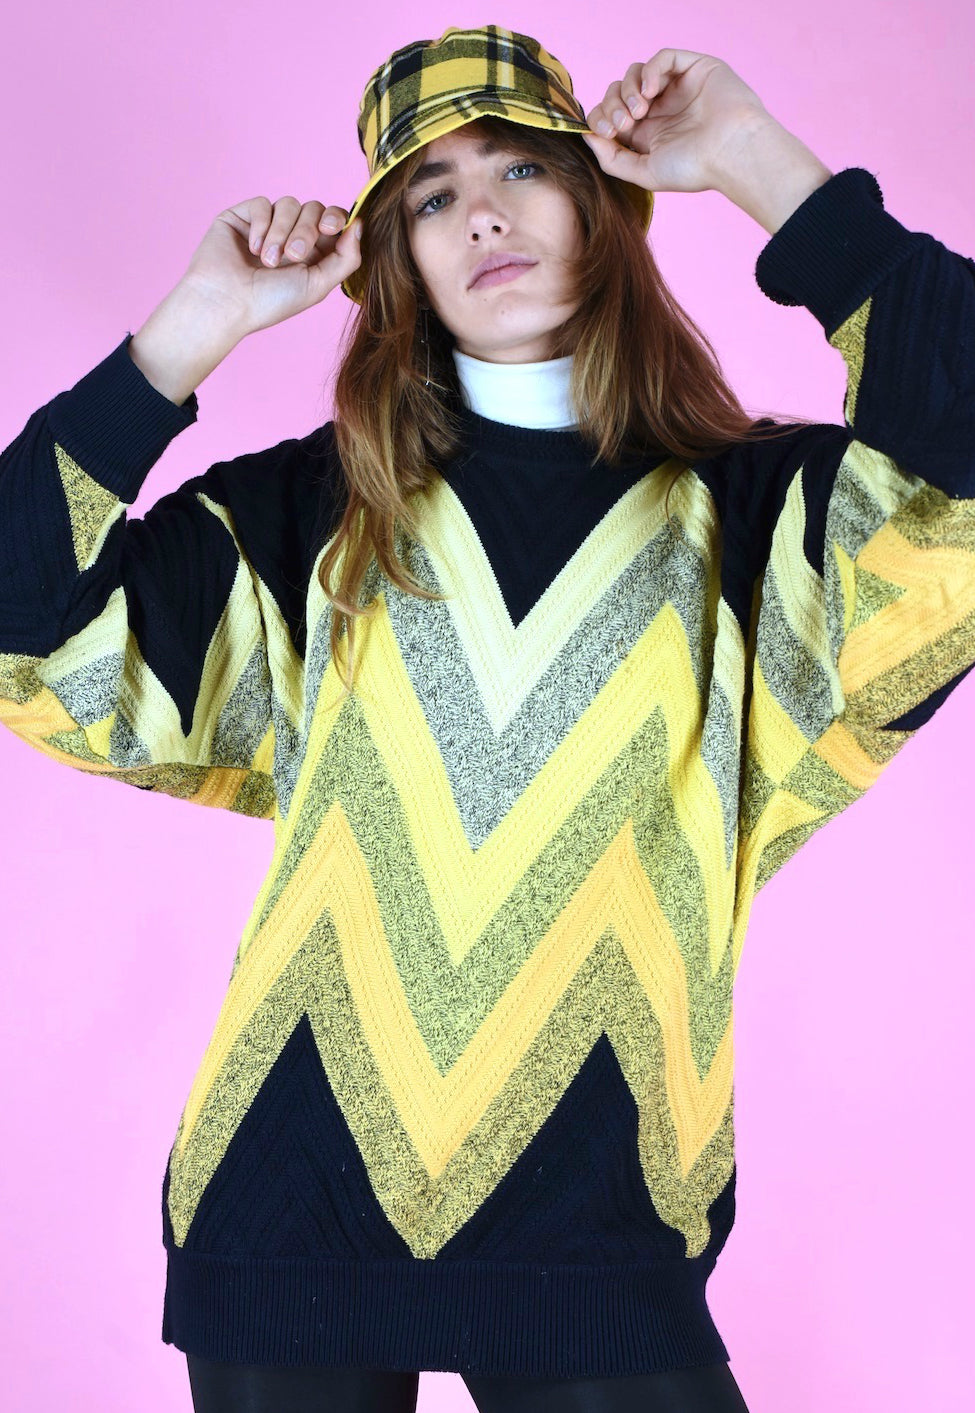 Vintage 90s Carlo Colucci Knit Jumper Black Yellow Pattern in M/L